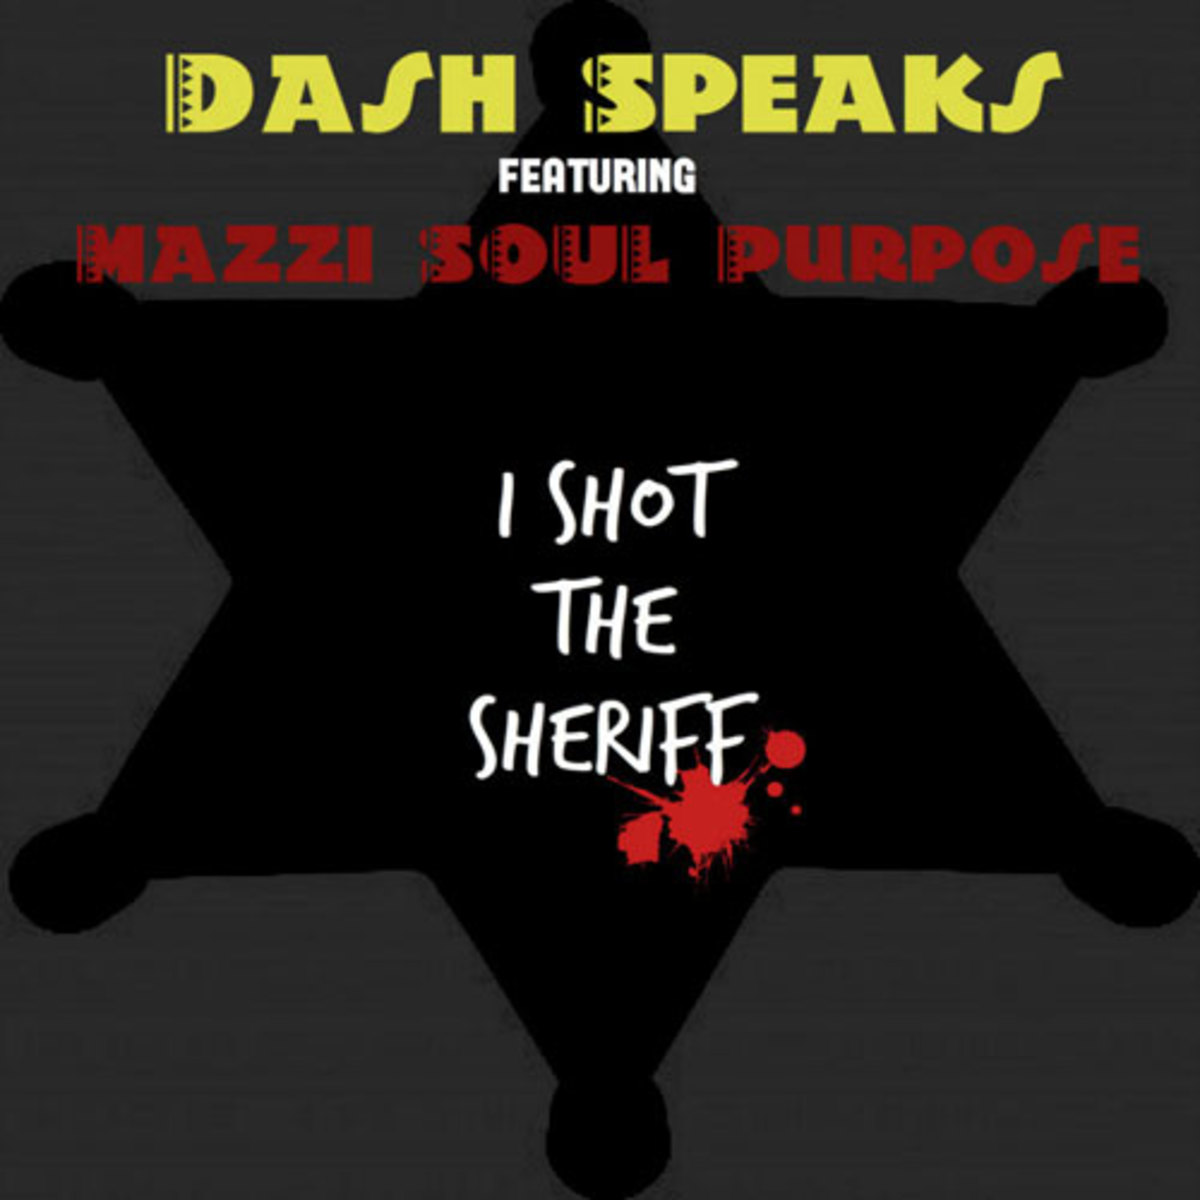 dashspeaks-shotsheriff.jpg